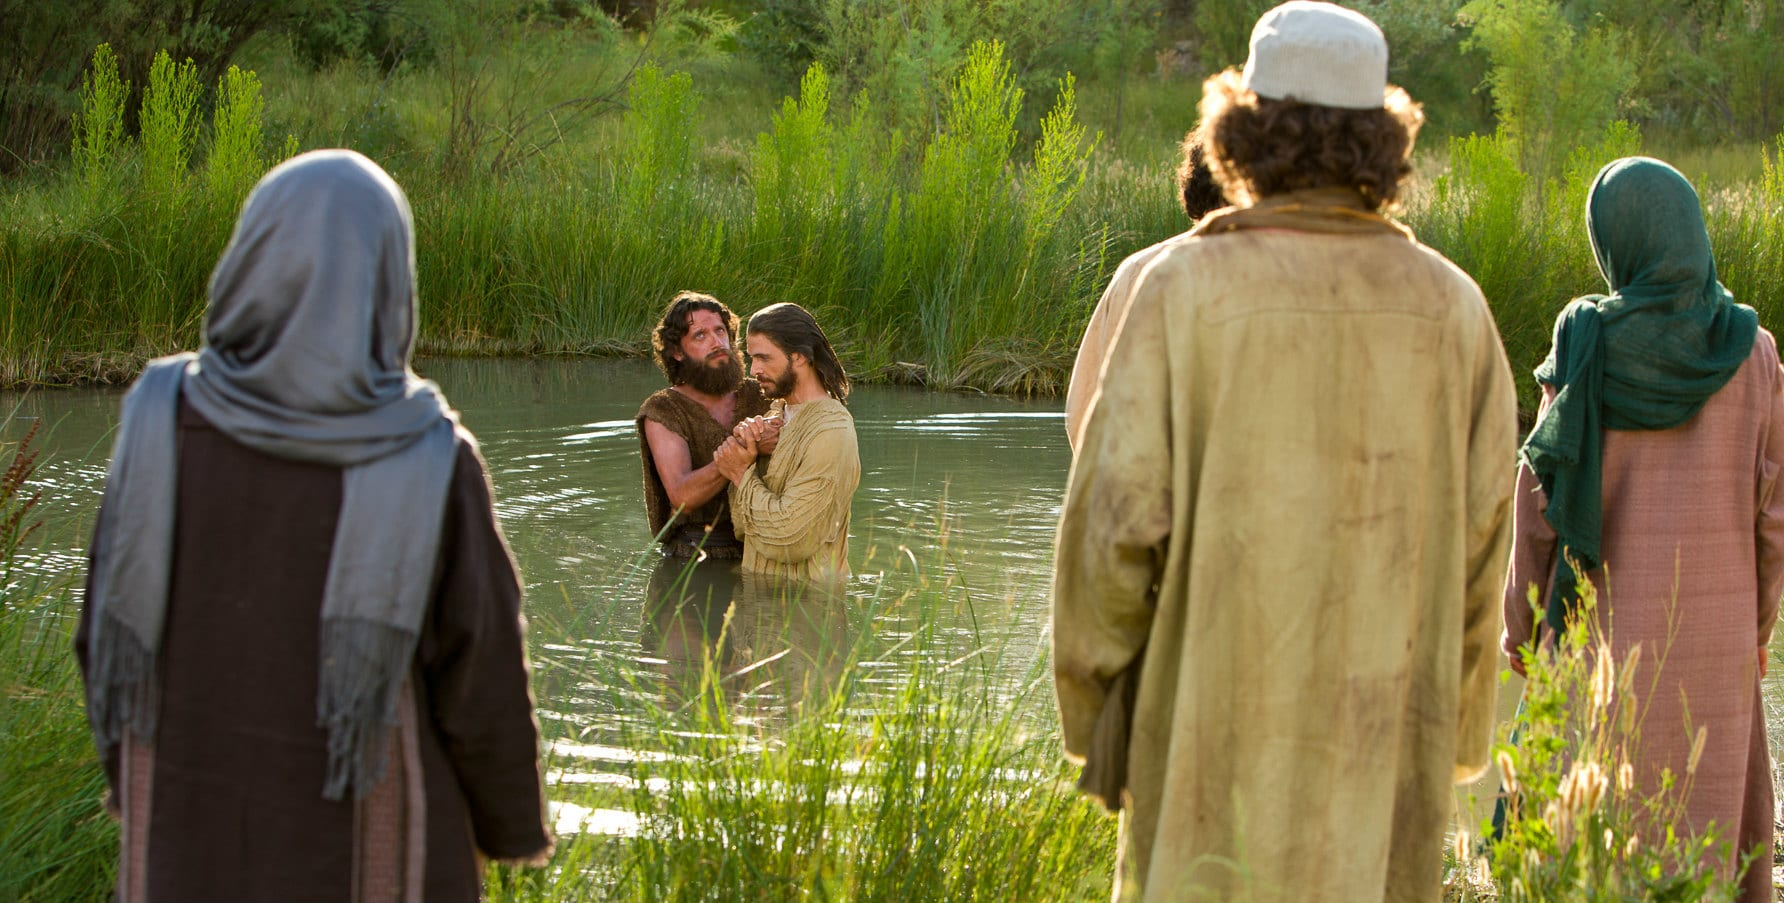 Who is coming to town baptism of jesus photo